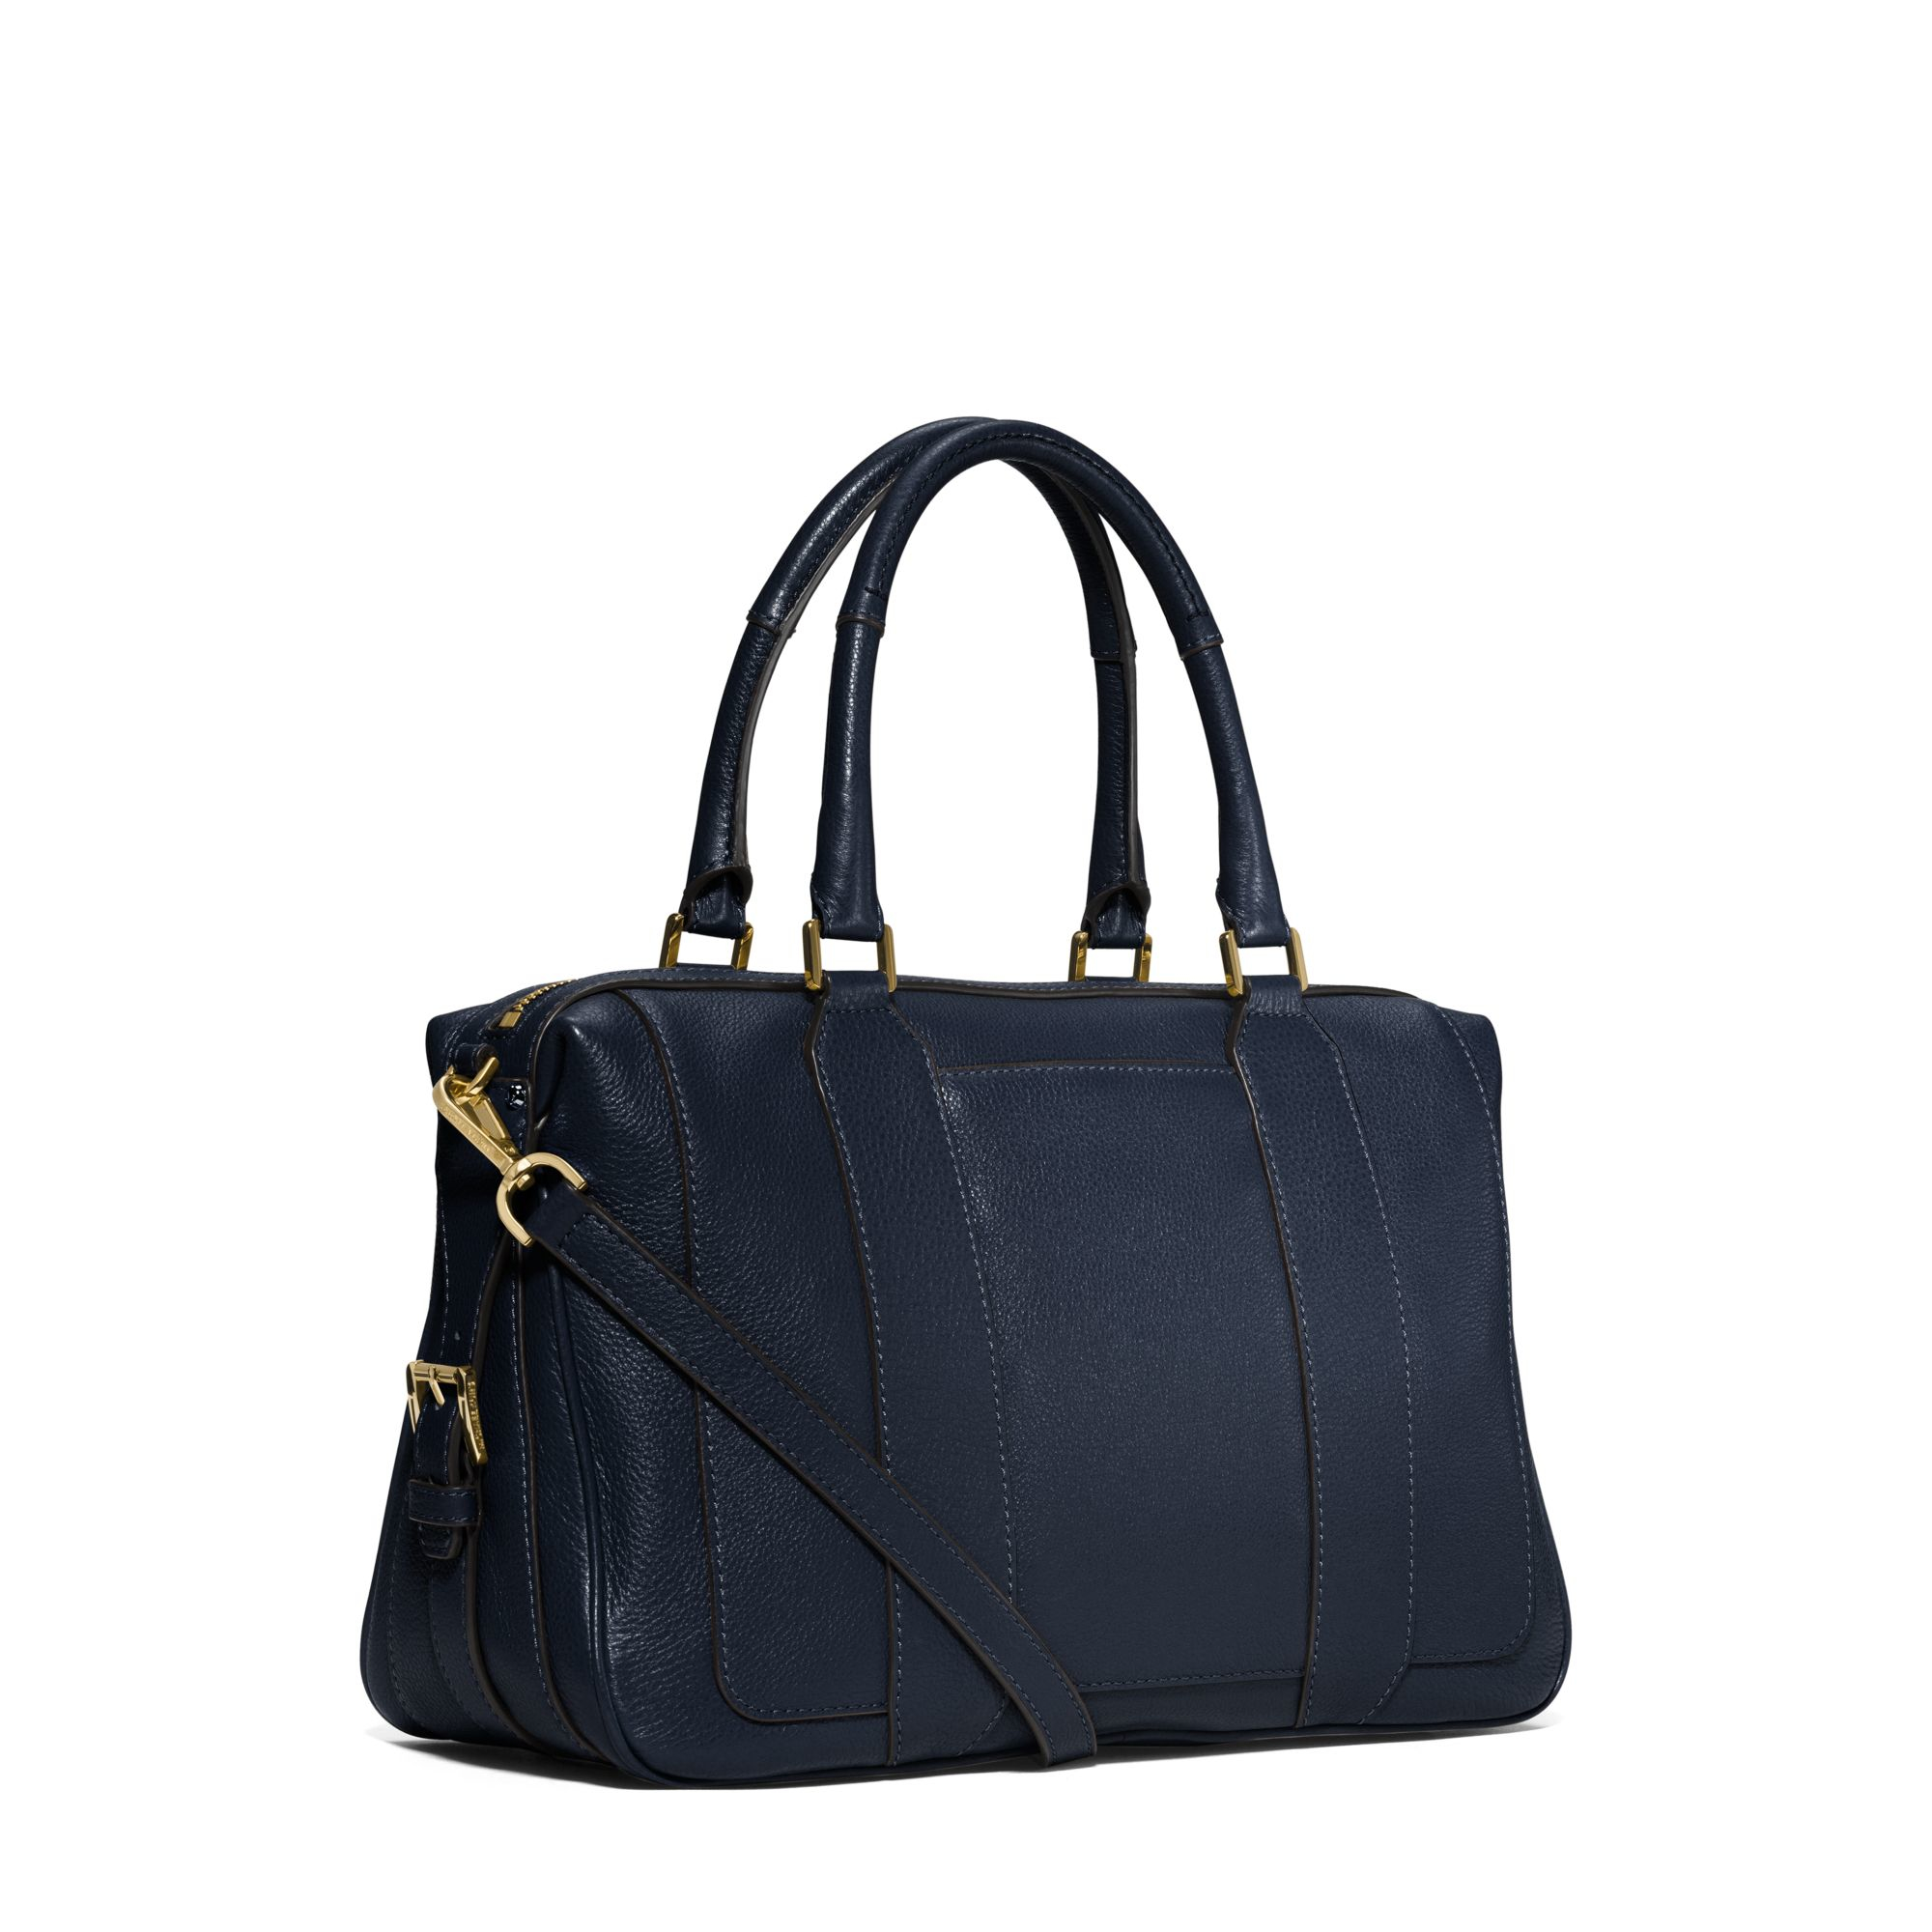 Michael kors Julia Large Leather Satchel in Blue | Lyst